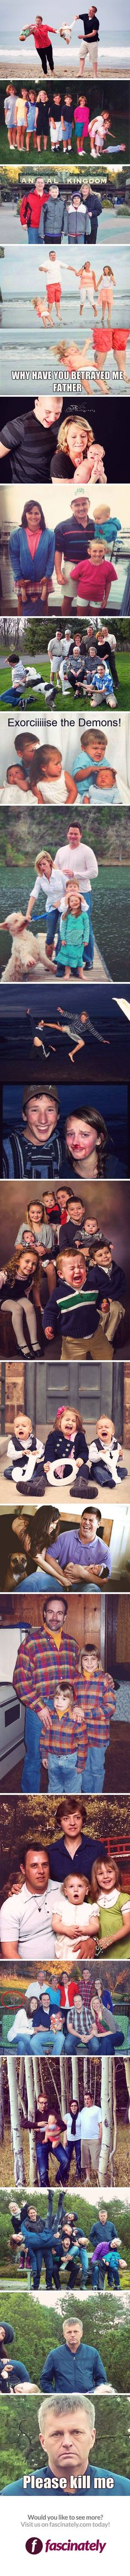 18 Family Photos Gone Wrong… The third ones got me dead😂😂